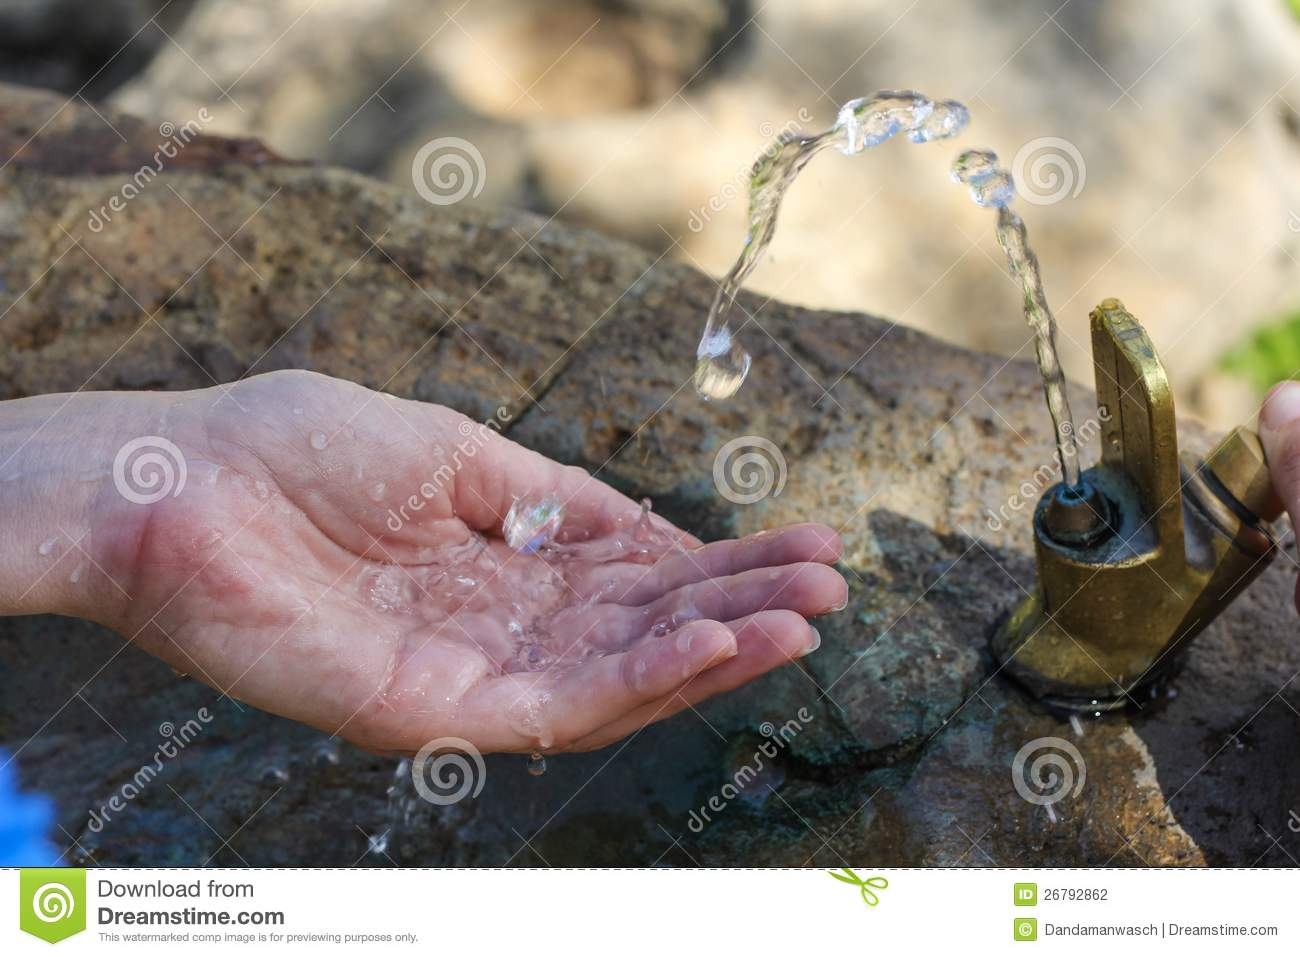 Drinking Water Faucet >> Water Coming Out Of Drinking Fountain Stock Image | CartoonDealer.com #91821013